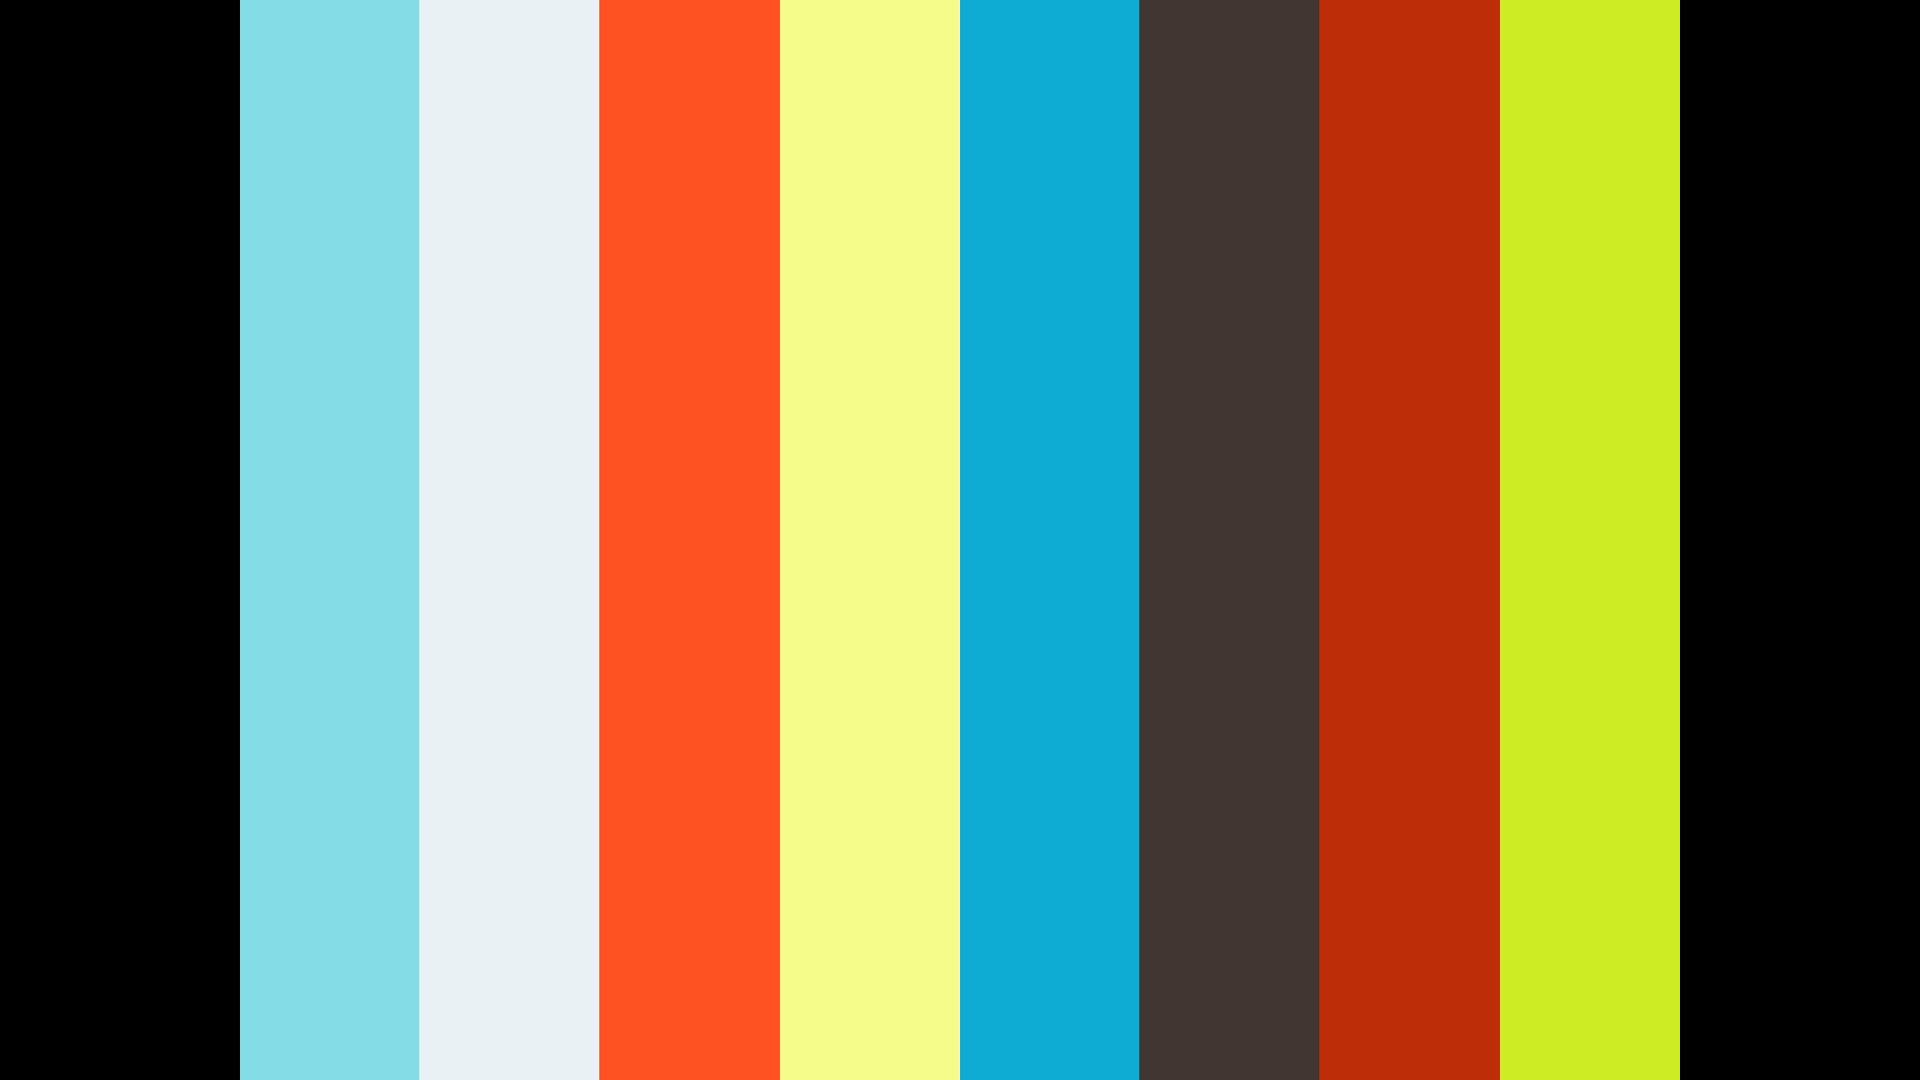 Market News #88. Q3 results: Morgan Stanley, Netflix. Tesla gets OK to start EV production in China.